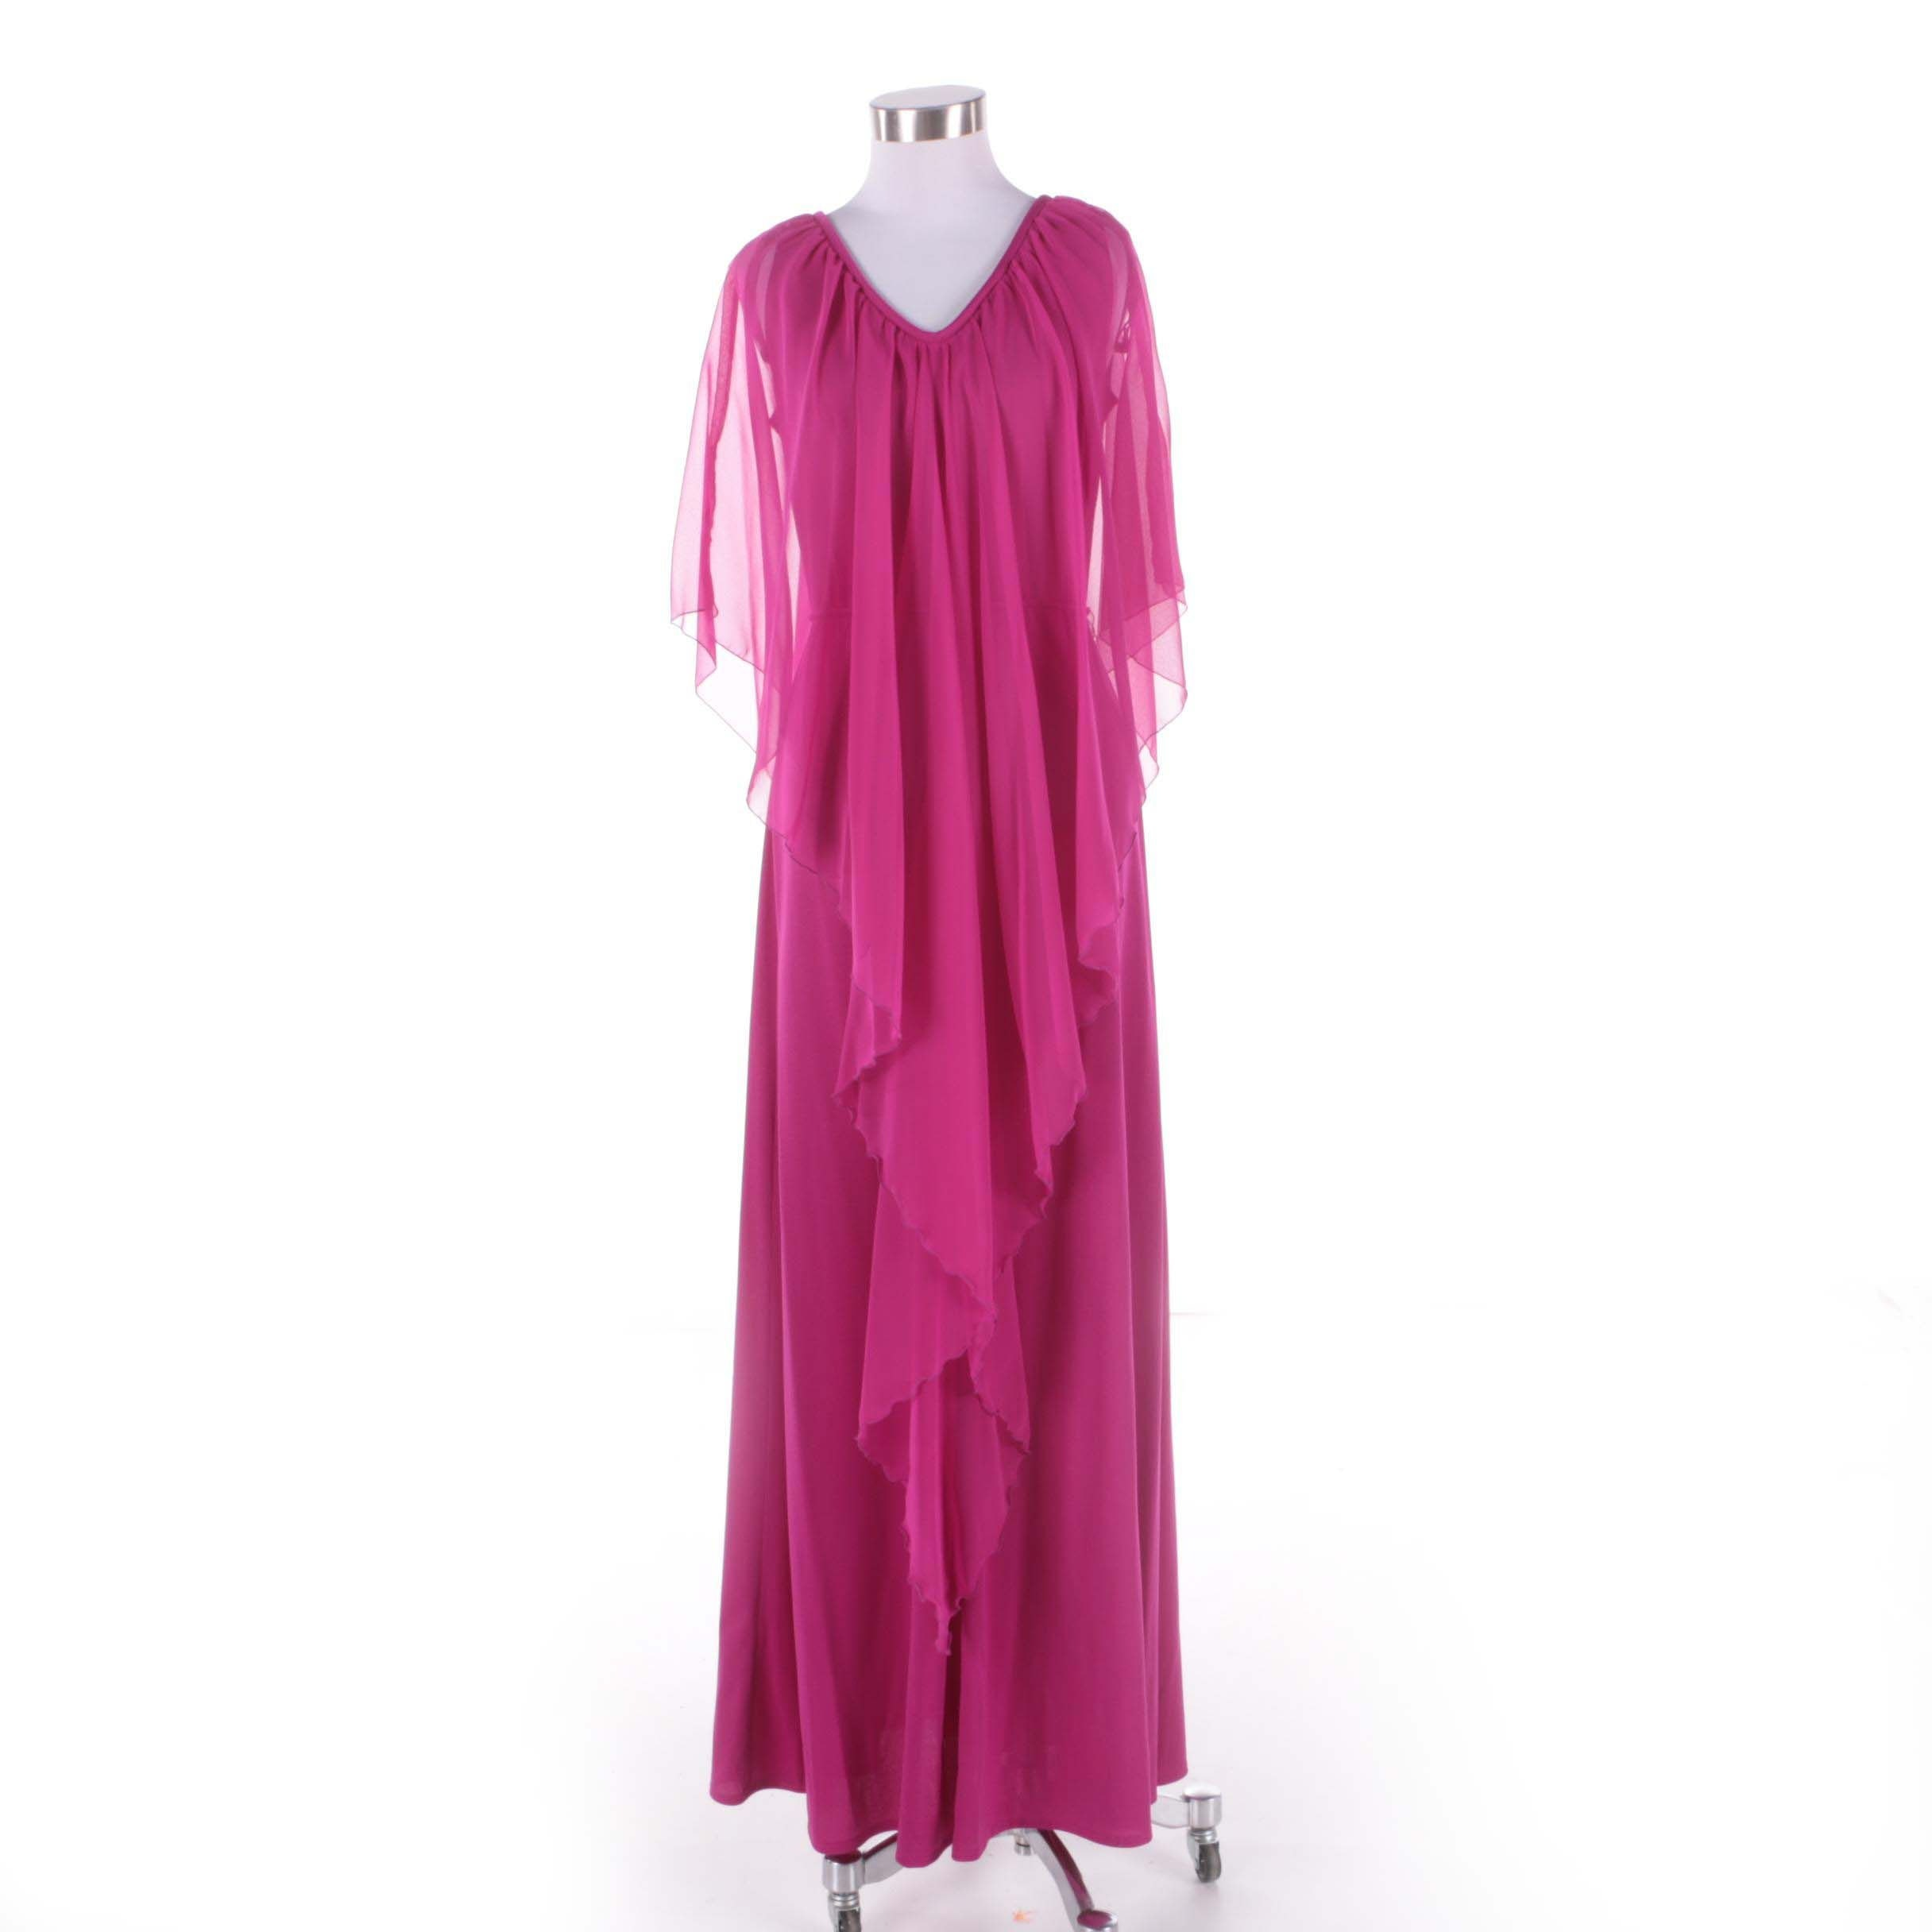 1970s Vintage Fandango Violet Maxi Evening Dress with Sheer Waterfall Shawl